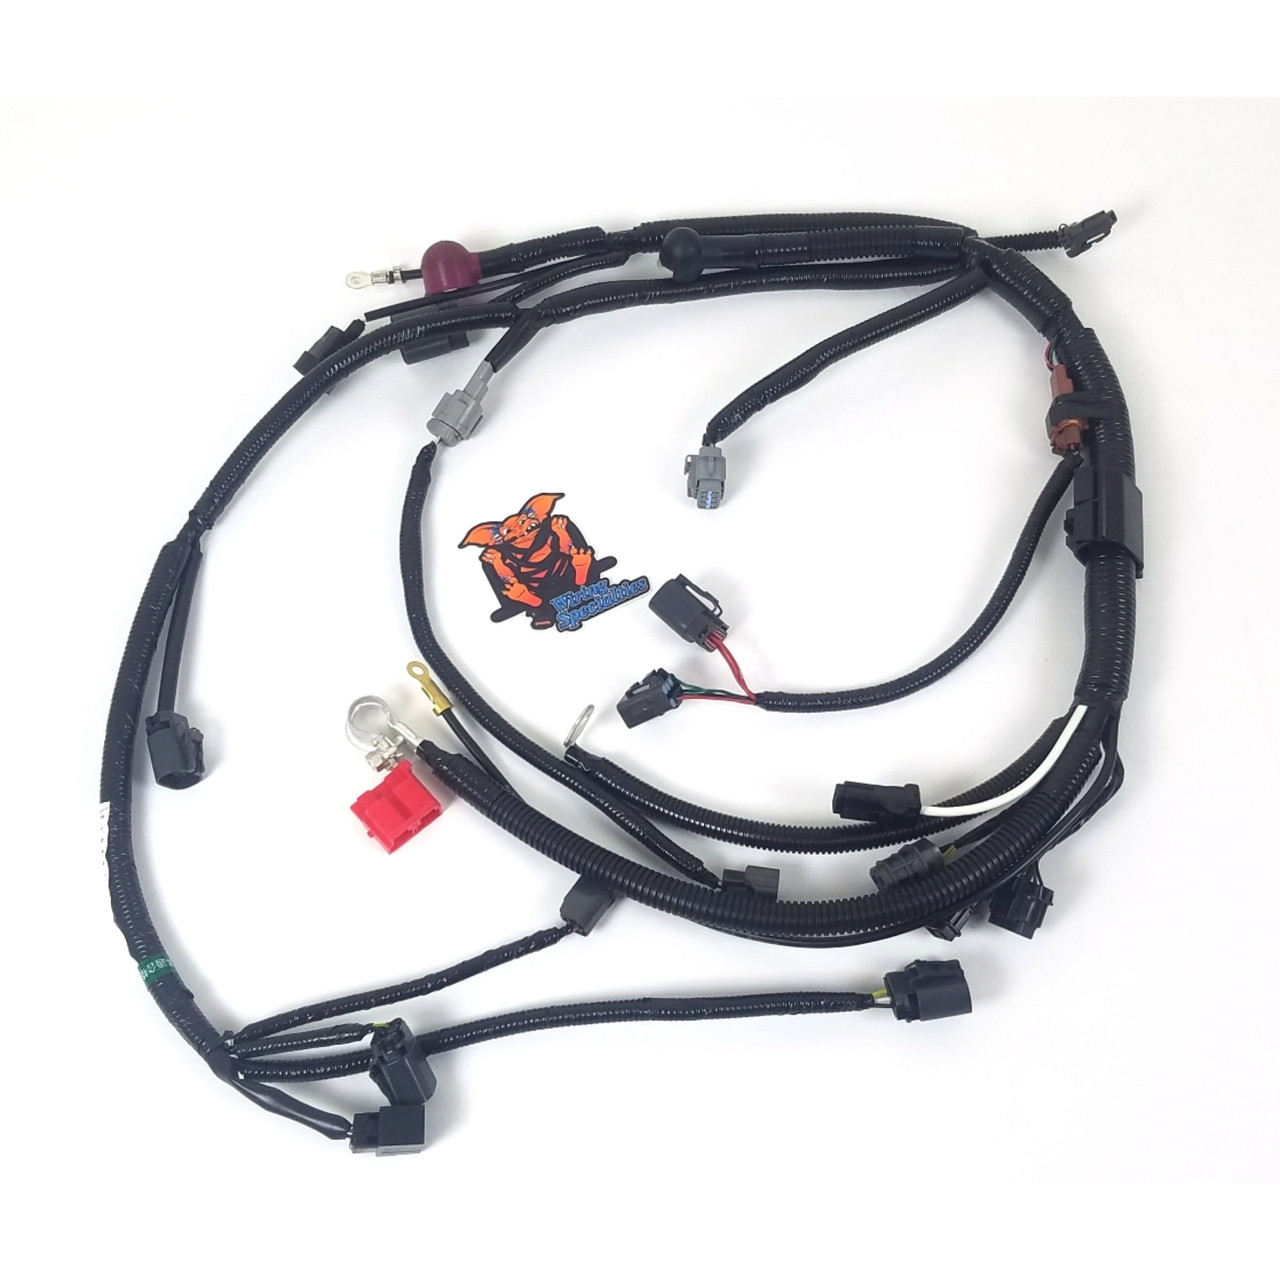 small resolution of wiring specialties s14 ka24de lower harness for 240sx s14 ka24de wiring harness diagram ka24de wiring harness